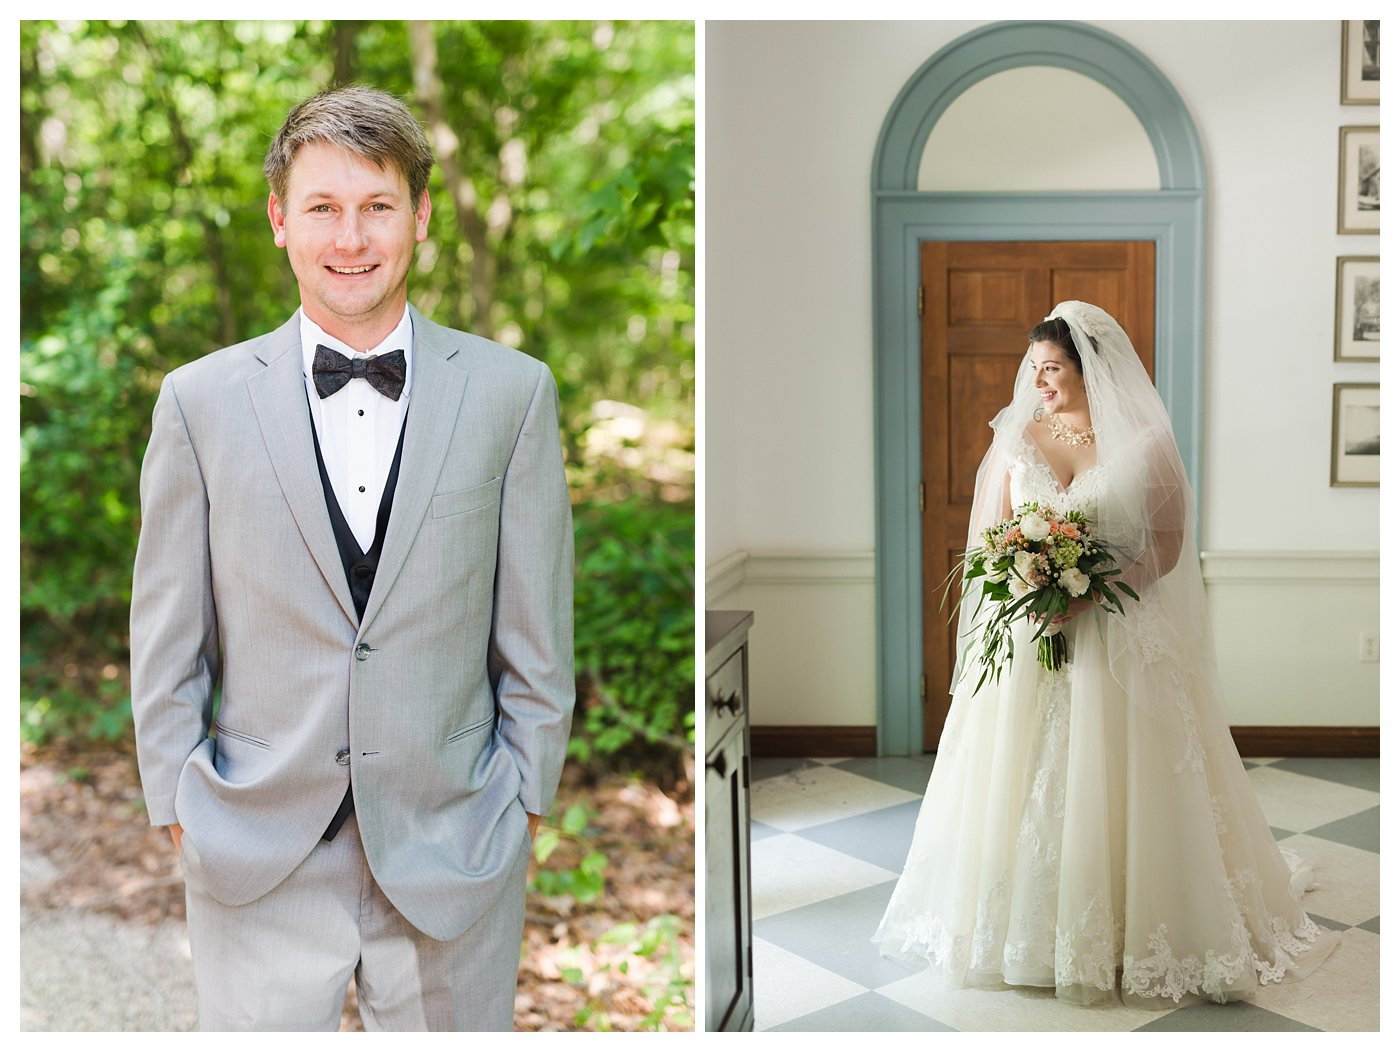 Historic_Hope_Plantation_Wedding_Photography_Sage_Summer_Outdoor_Windsor_NC_0004.jpg